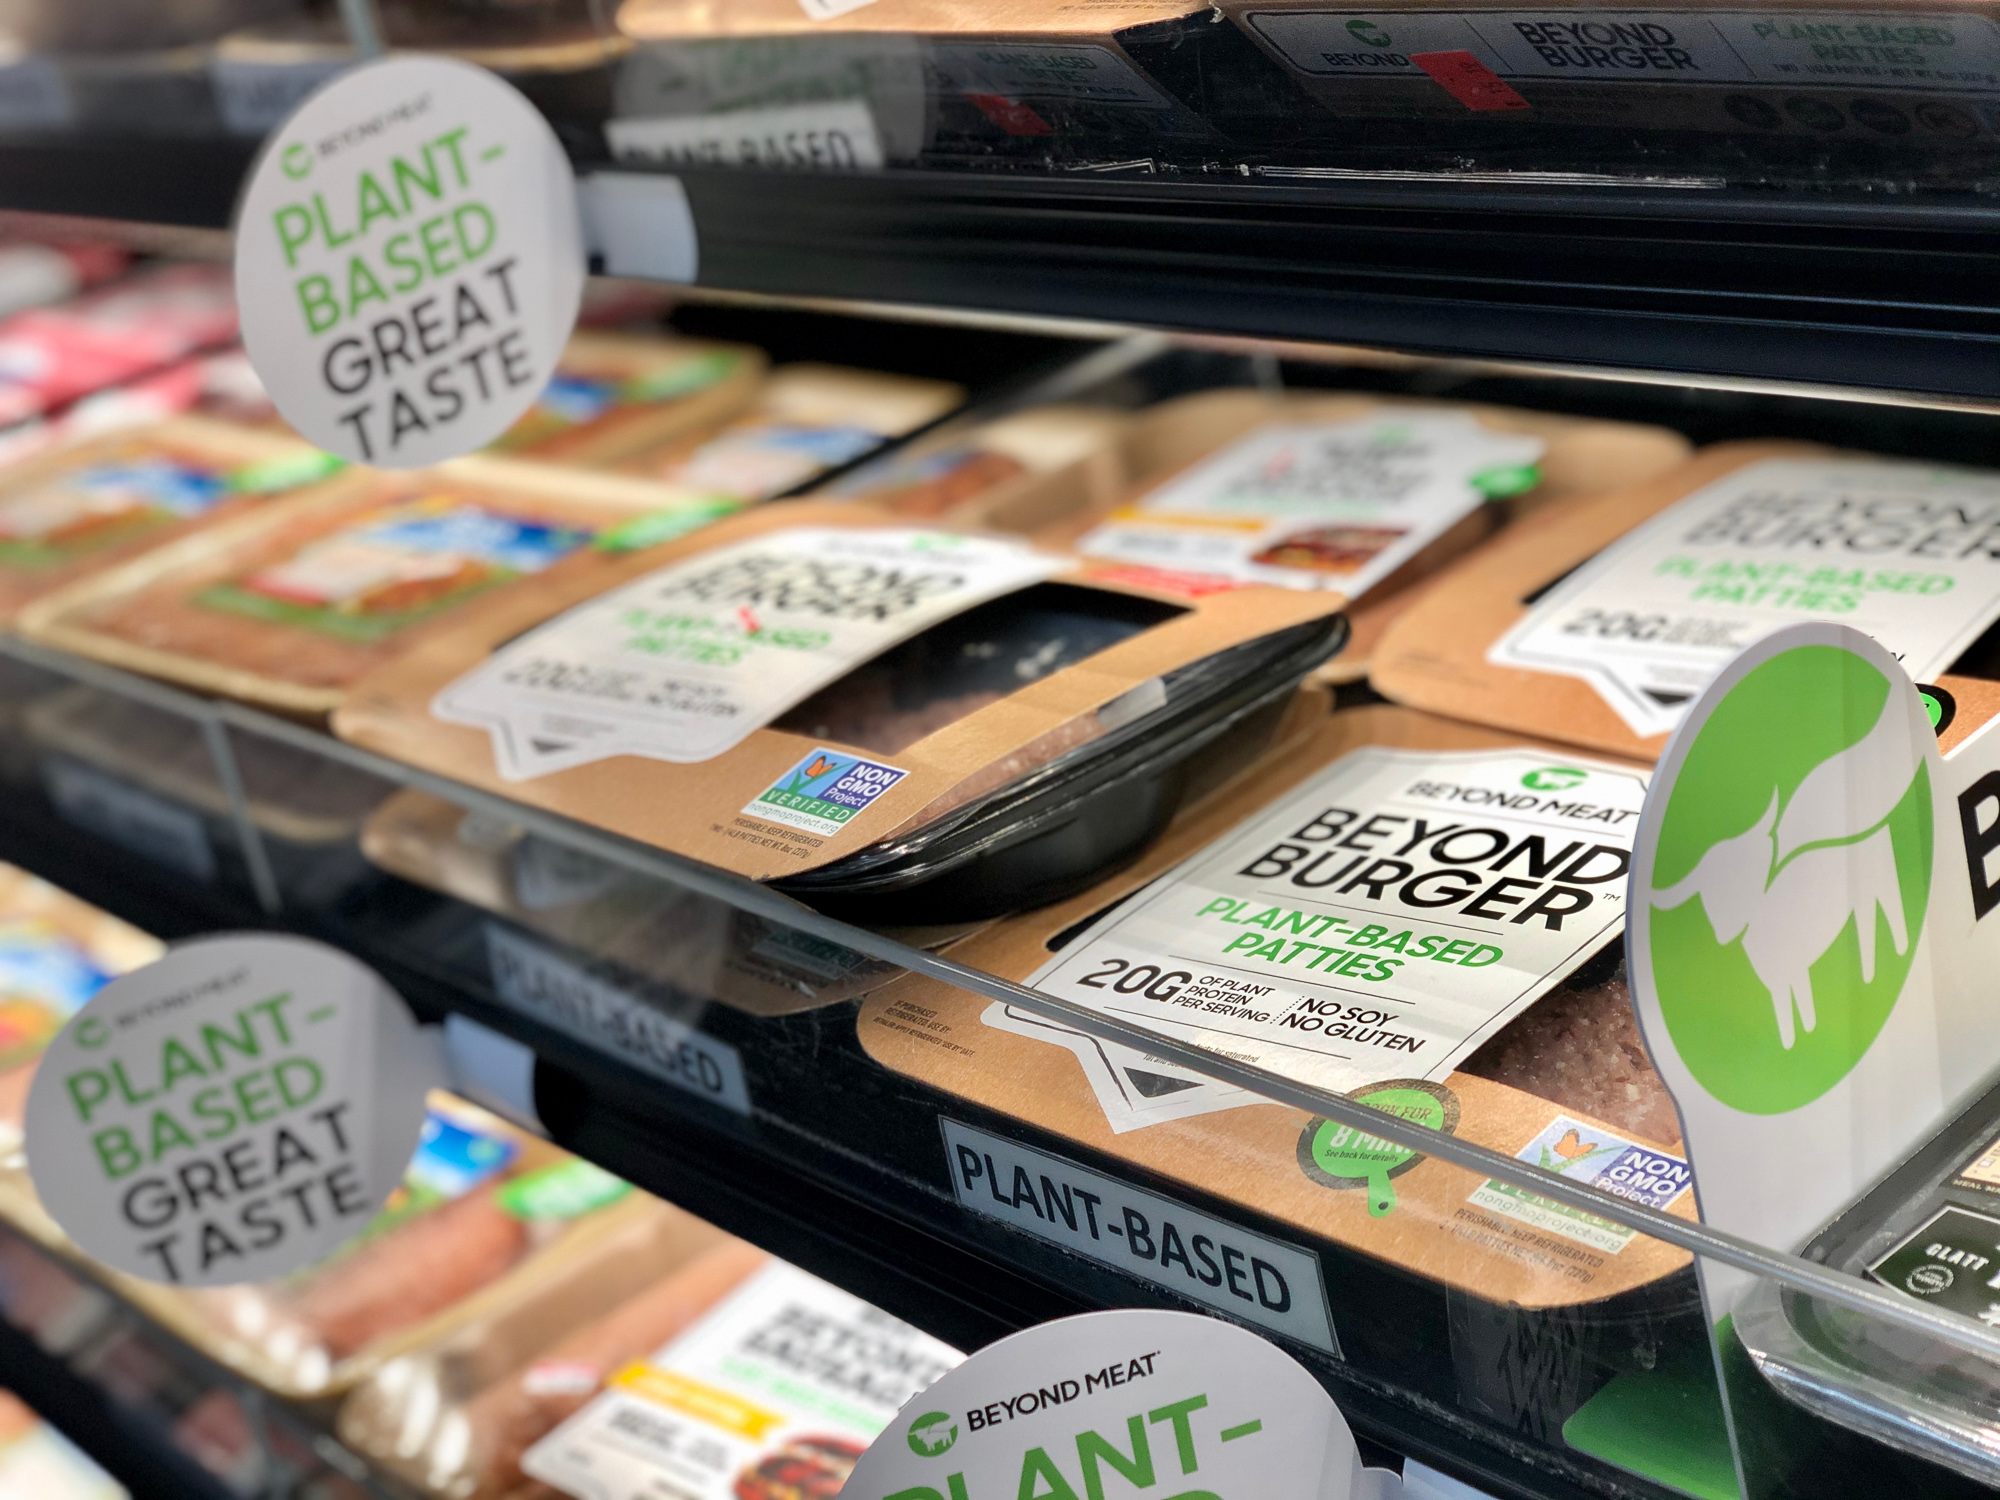 Beyond meat burgers merchandised in the refrigerated section